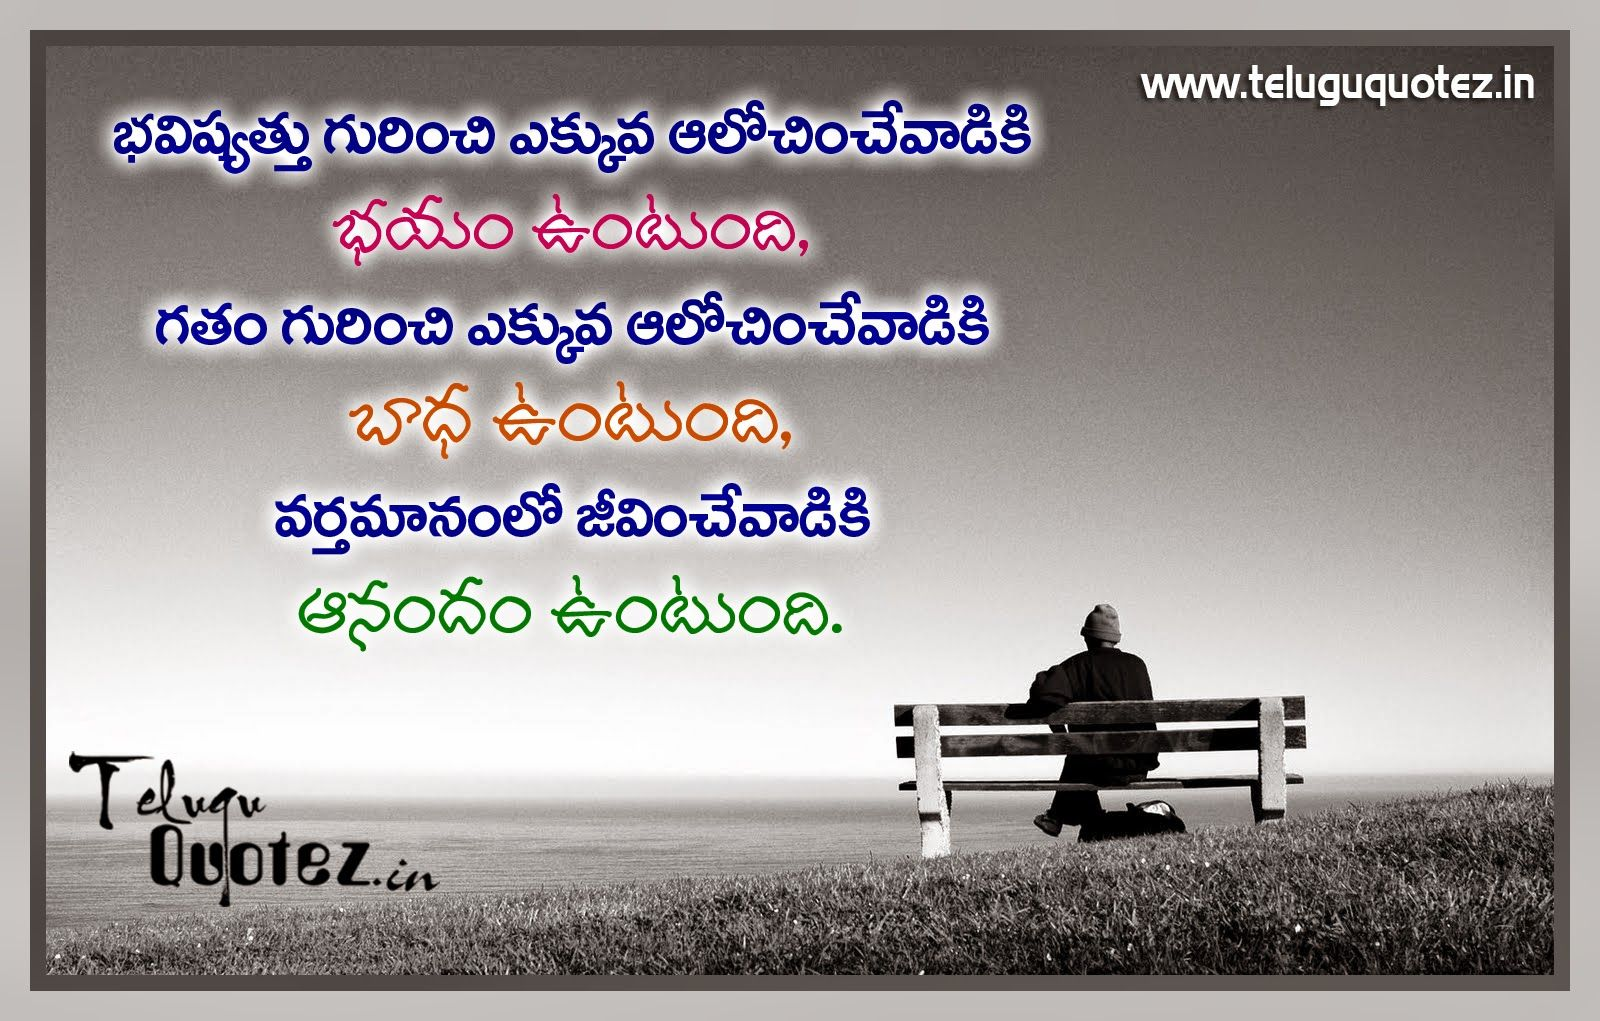 Best Saying Inspirational Life Quotes And Sayings About Love And Life In Teluguenglish Hindi